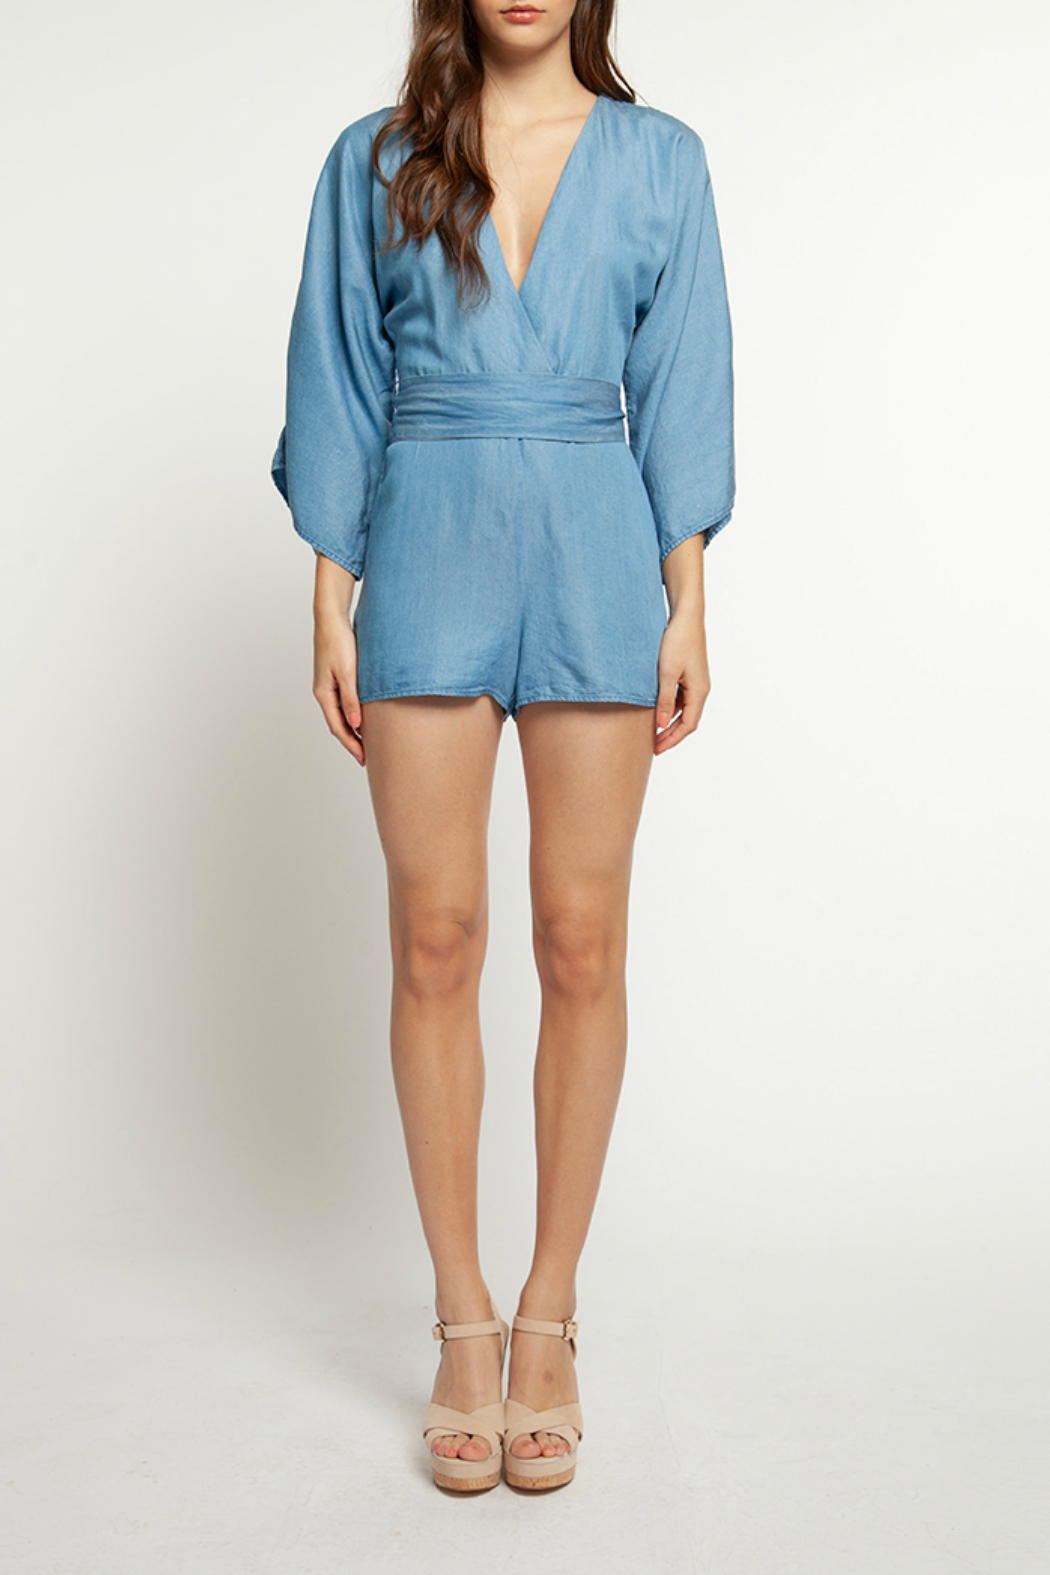 Dex V Neck L/S Belted Denim Romper - Main Image